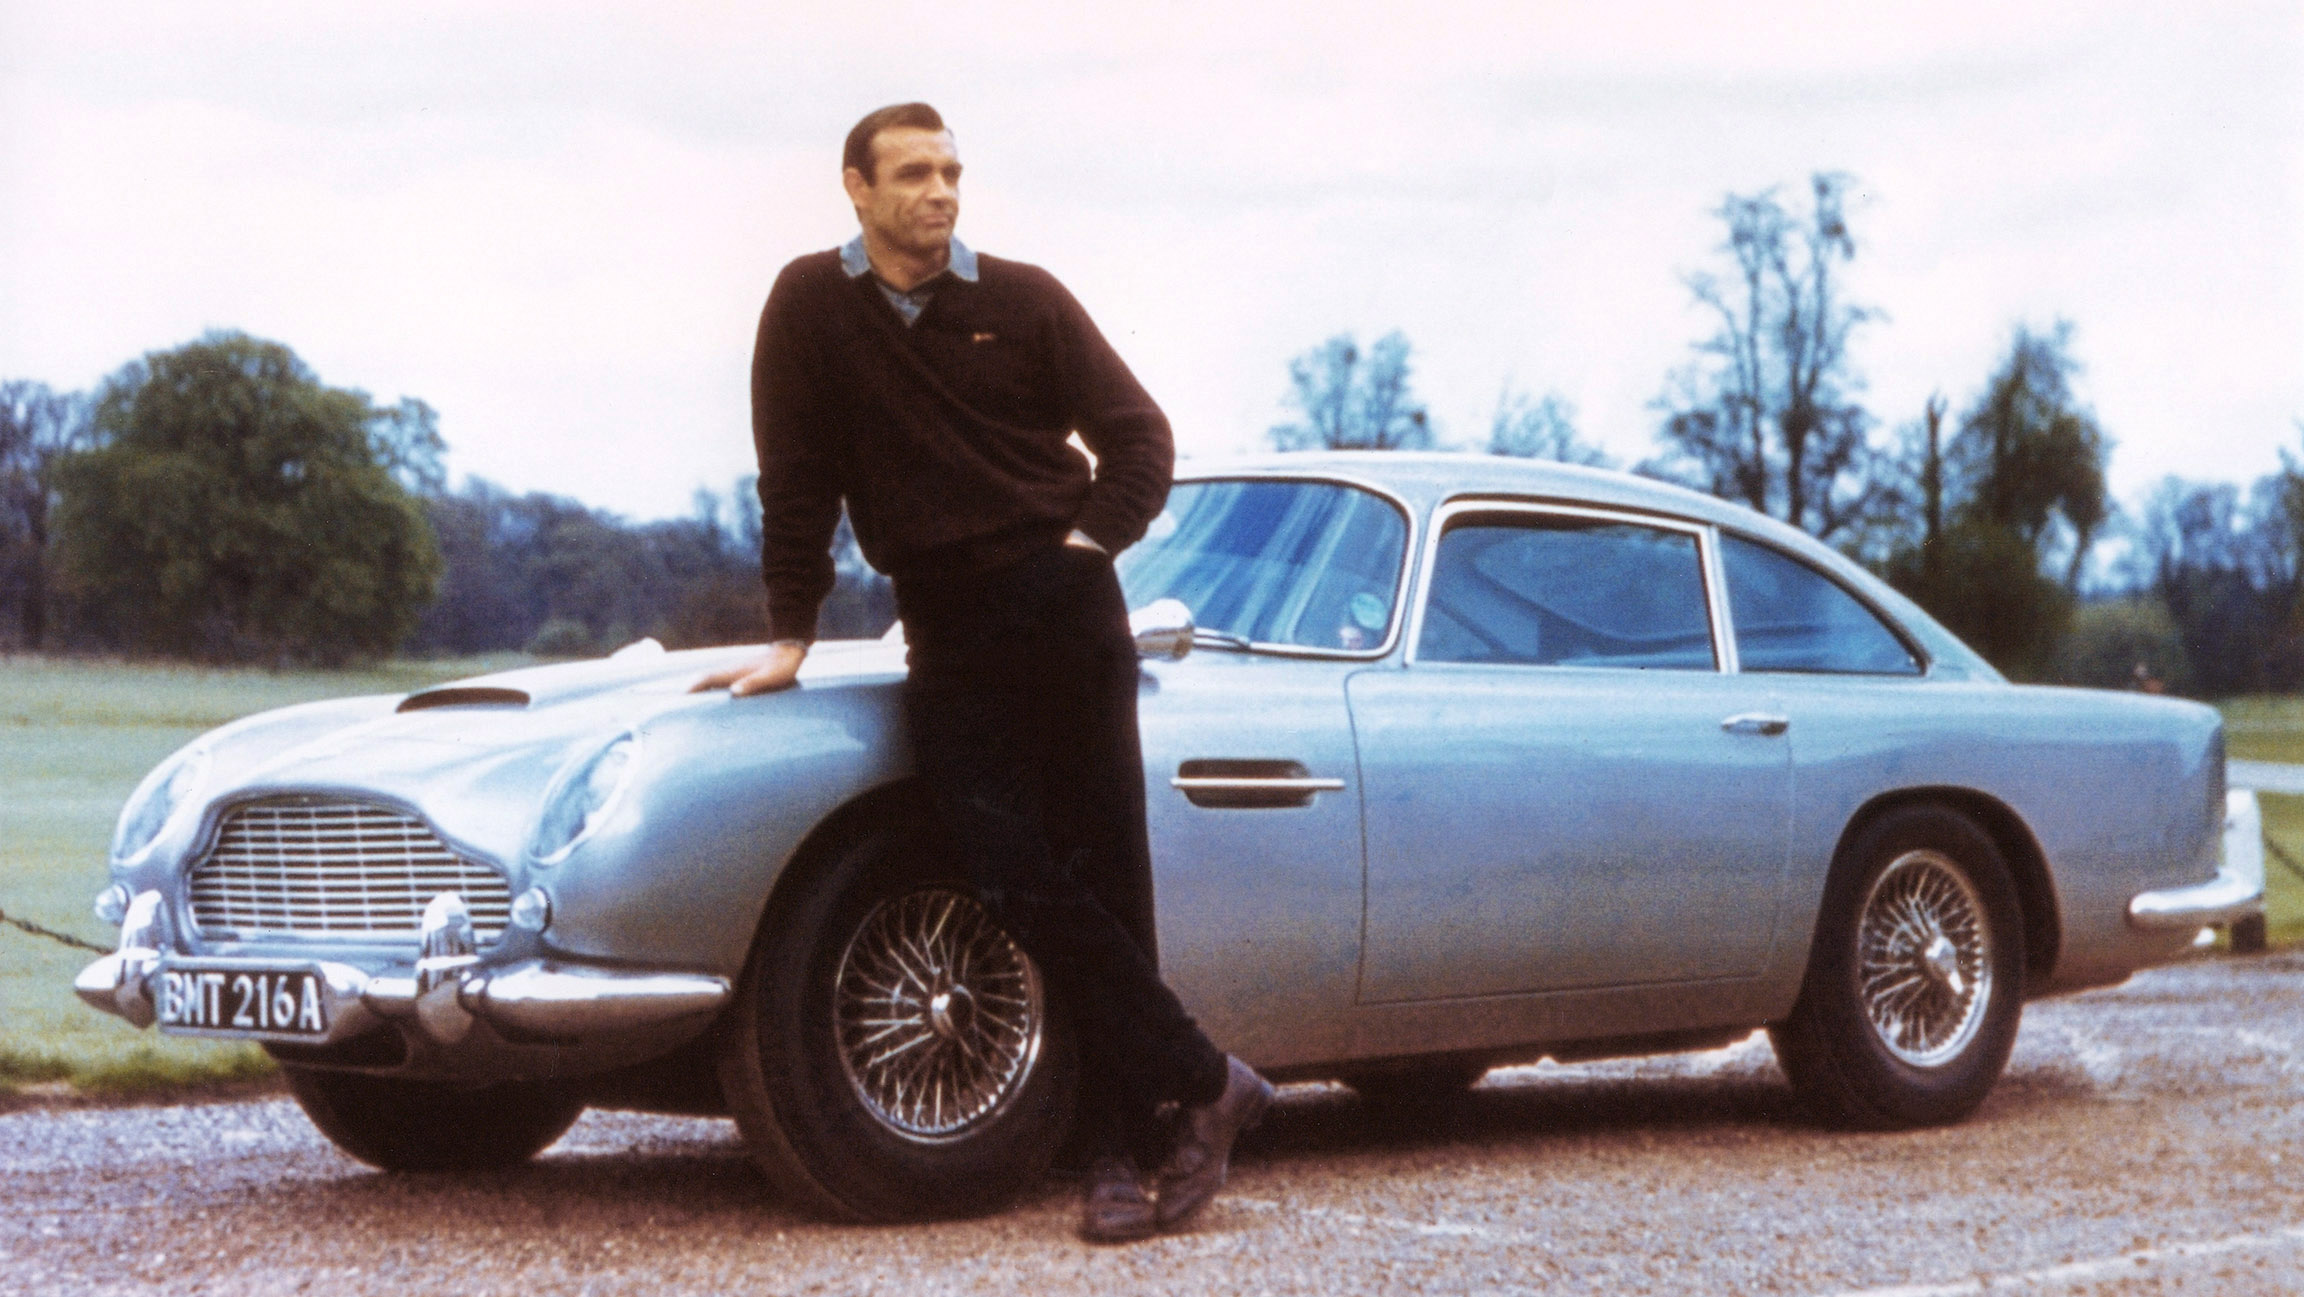 Db5 Best Bond Cars Gettyimages 607391400